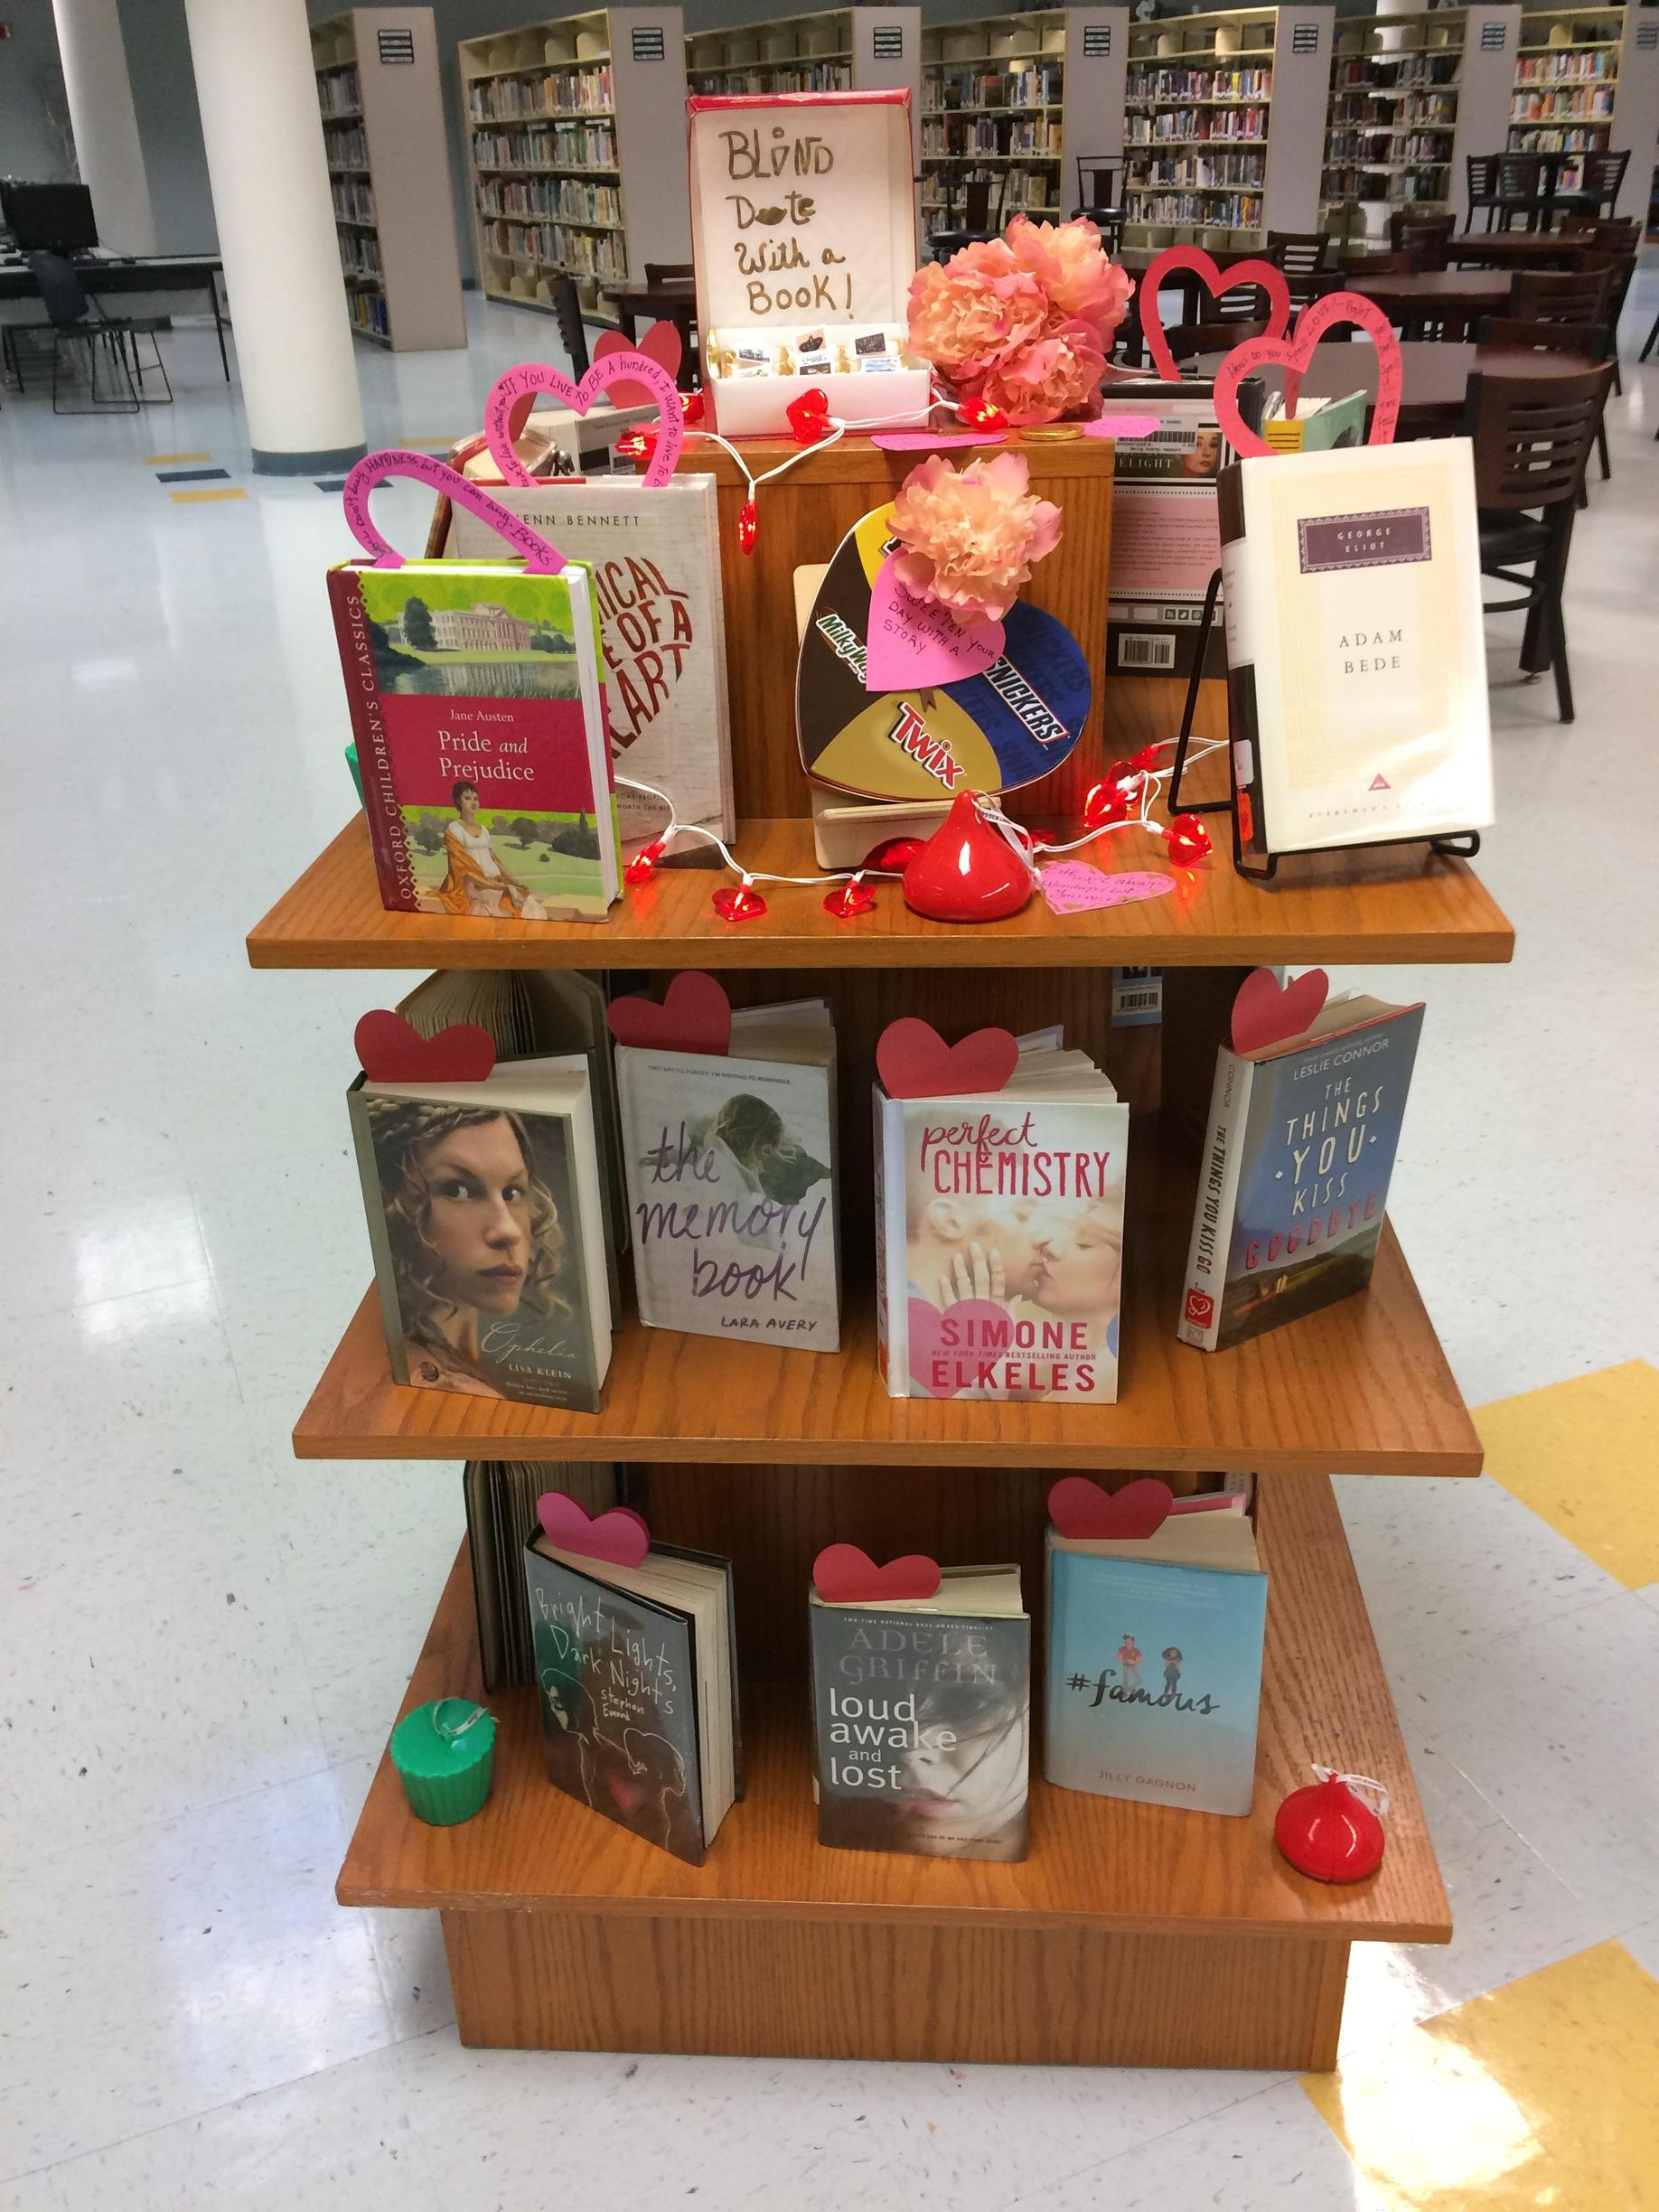 In love with a great book display